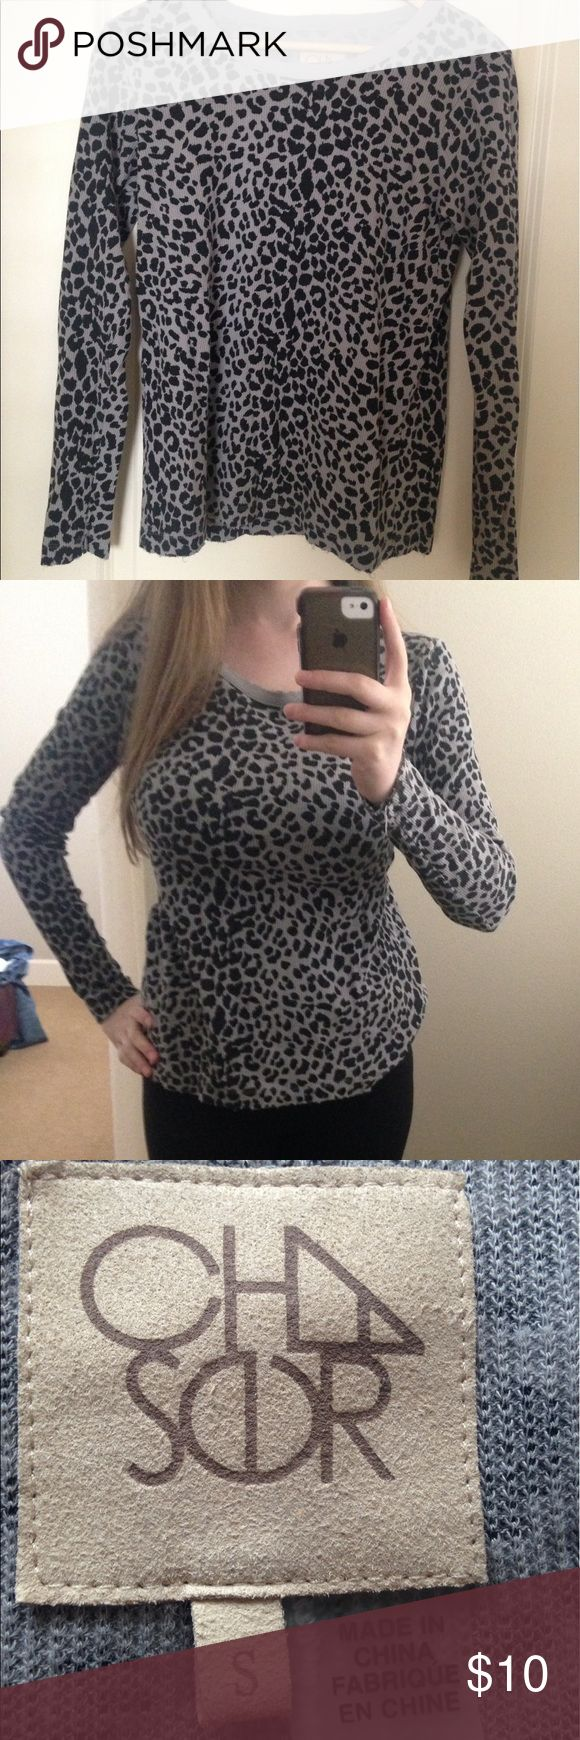 Cheetah Print Long Sleeve Shirt This adorable cheetah print shirt came from a boutique. It is size small, but easily could fit a medium (like me). Excellent condition. Fraying along the edges (as shown) is part of the style. Tops Tees - Long Sleeve